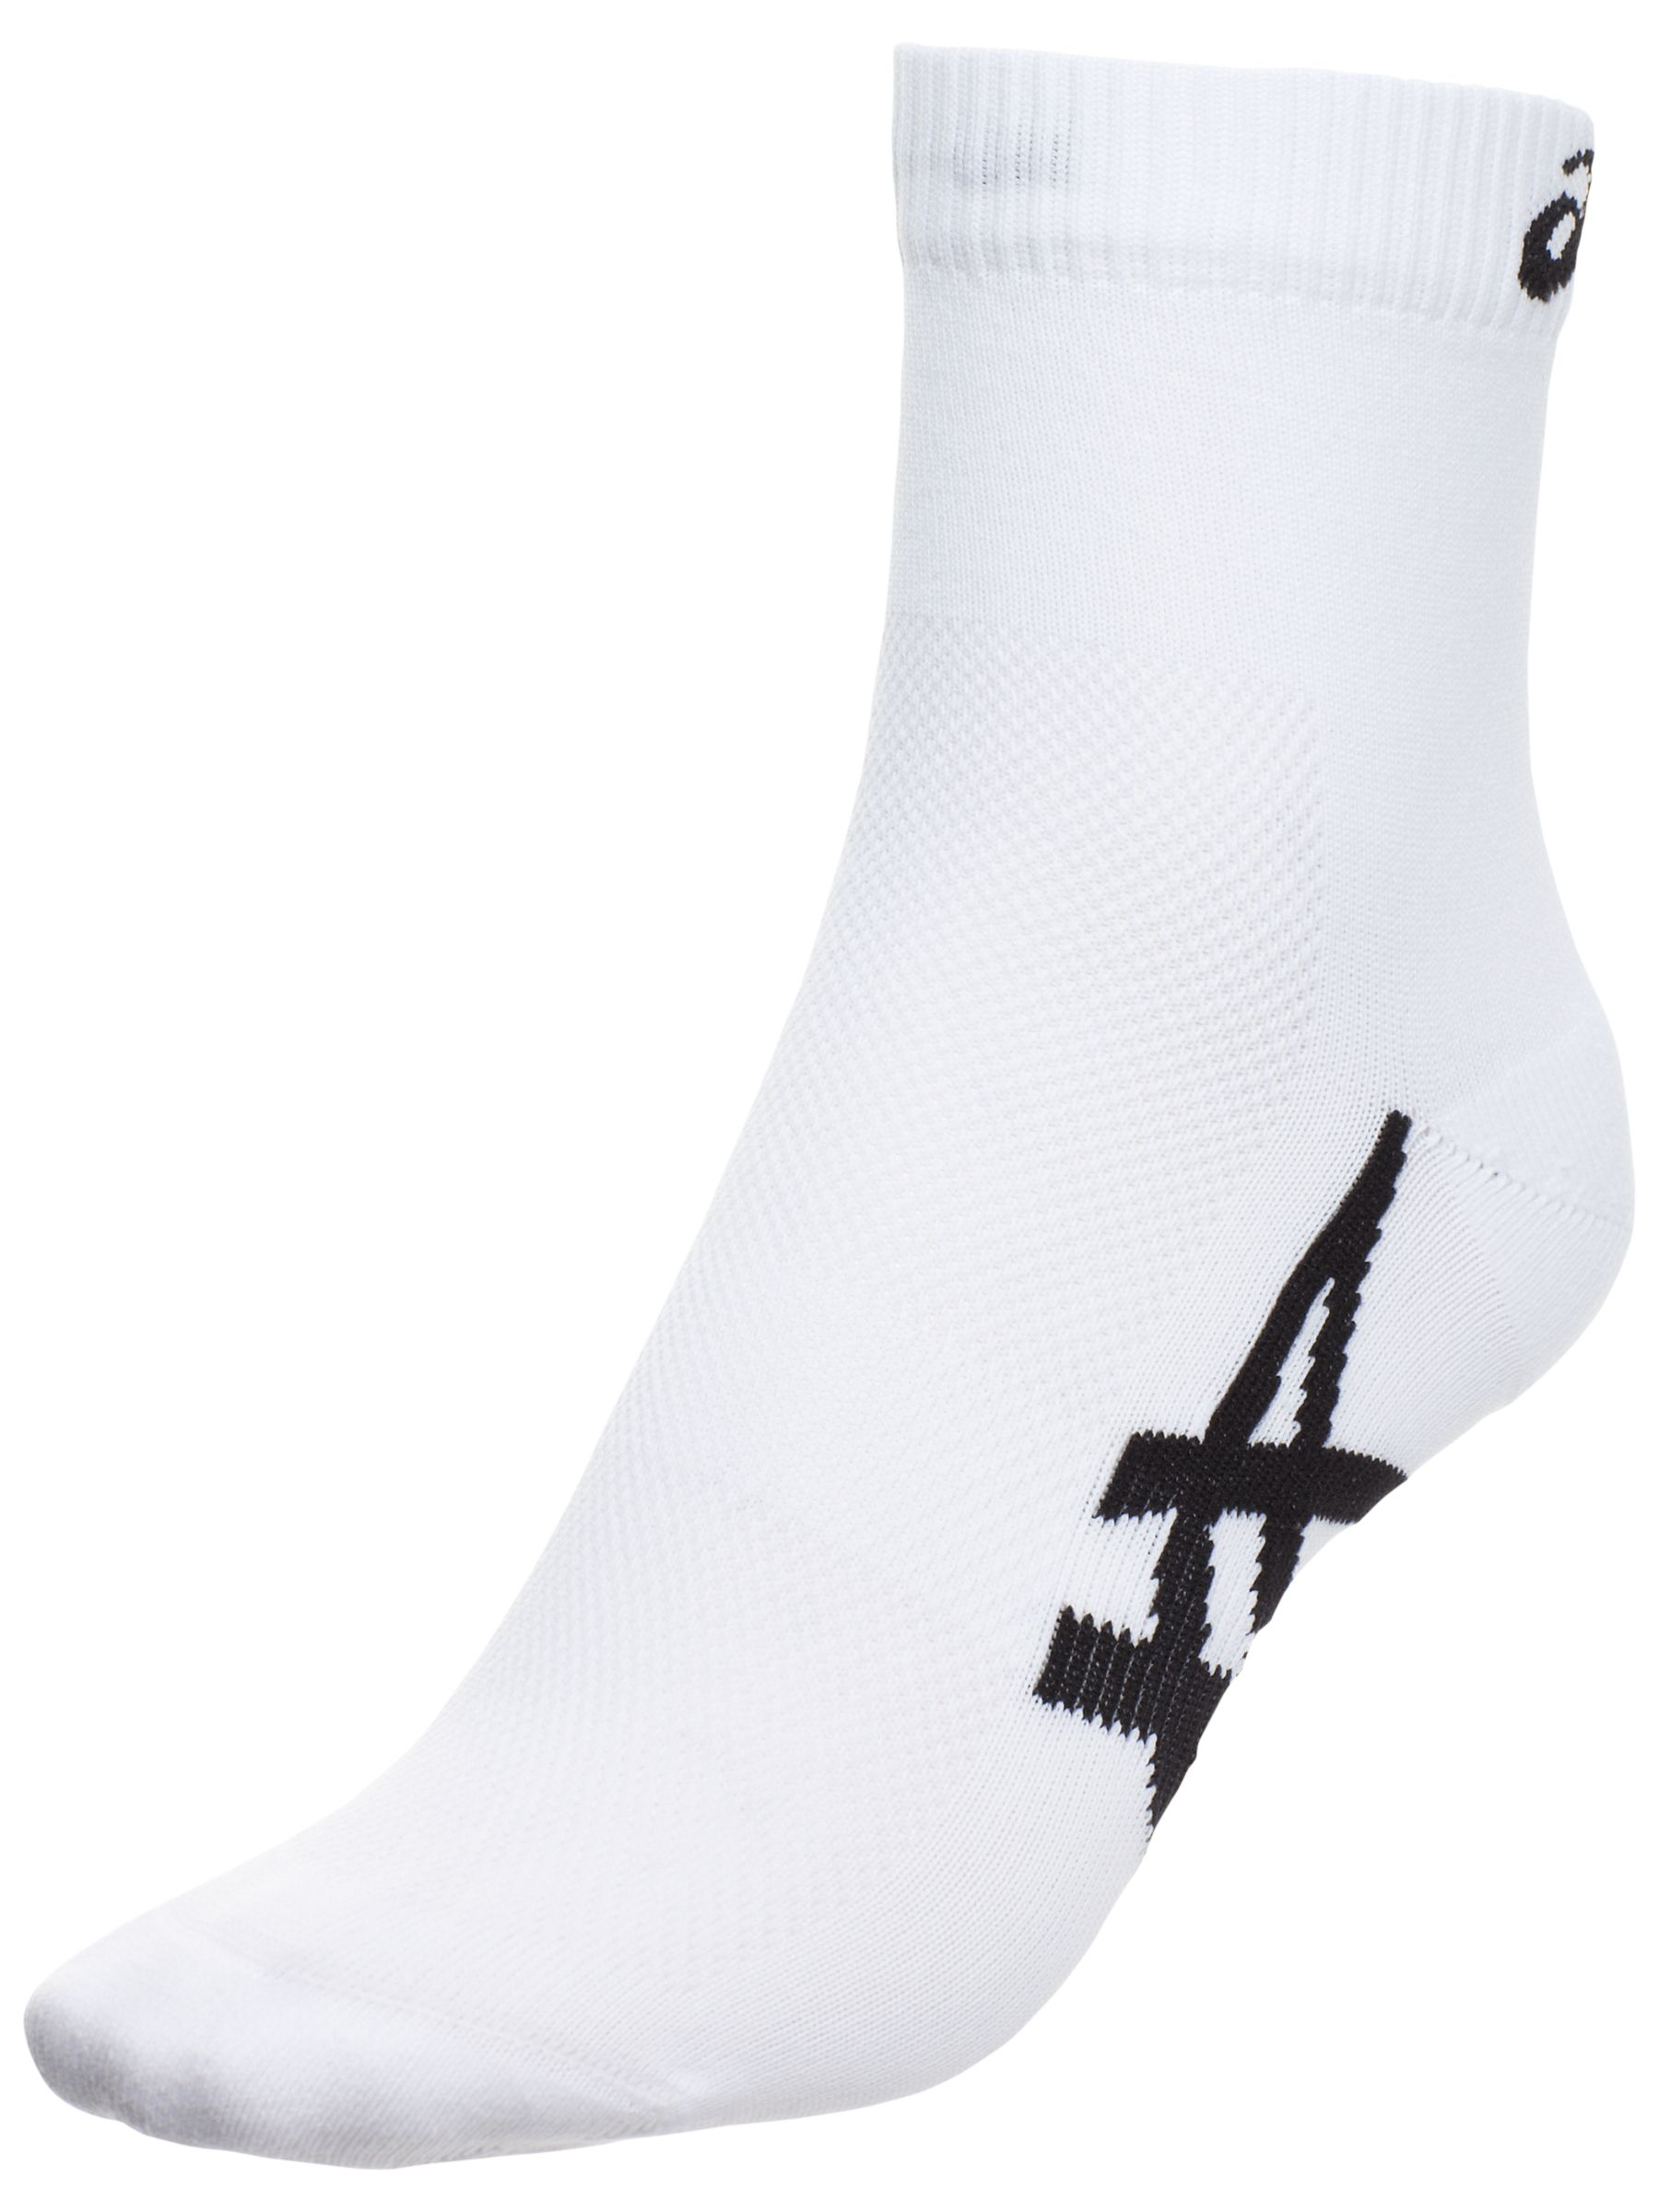 Asics 1000 Series Ankle Socks, Pack of 2, White